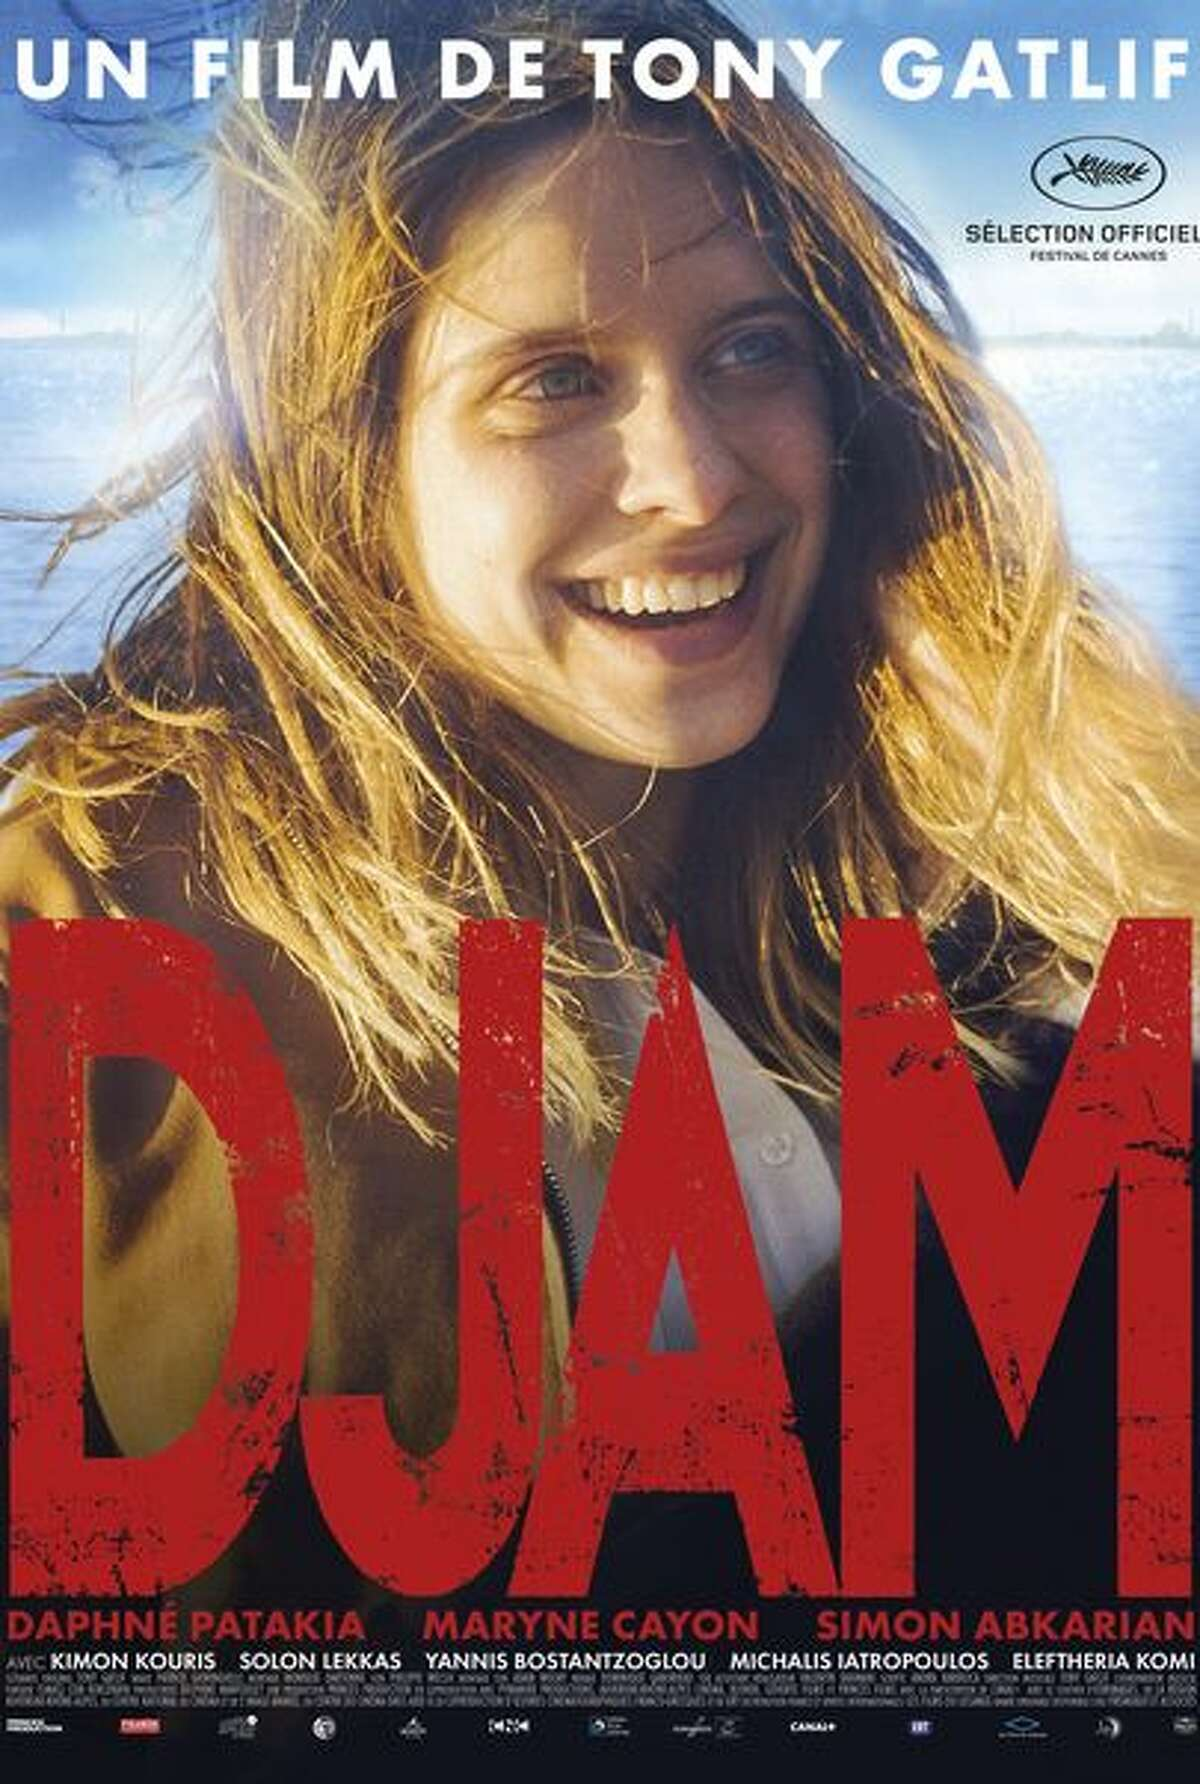 Djam is a film by a Romany director who uses the gypsy experience to reflect on the refugee experience. It is one of five films Laurence Kardish chose for this weekend's mini-film festival.